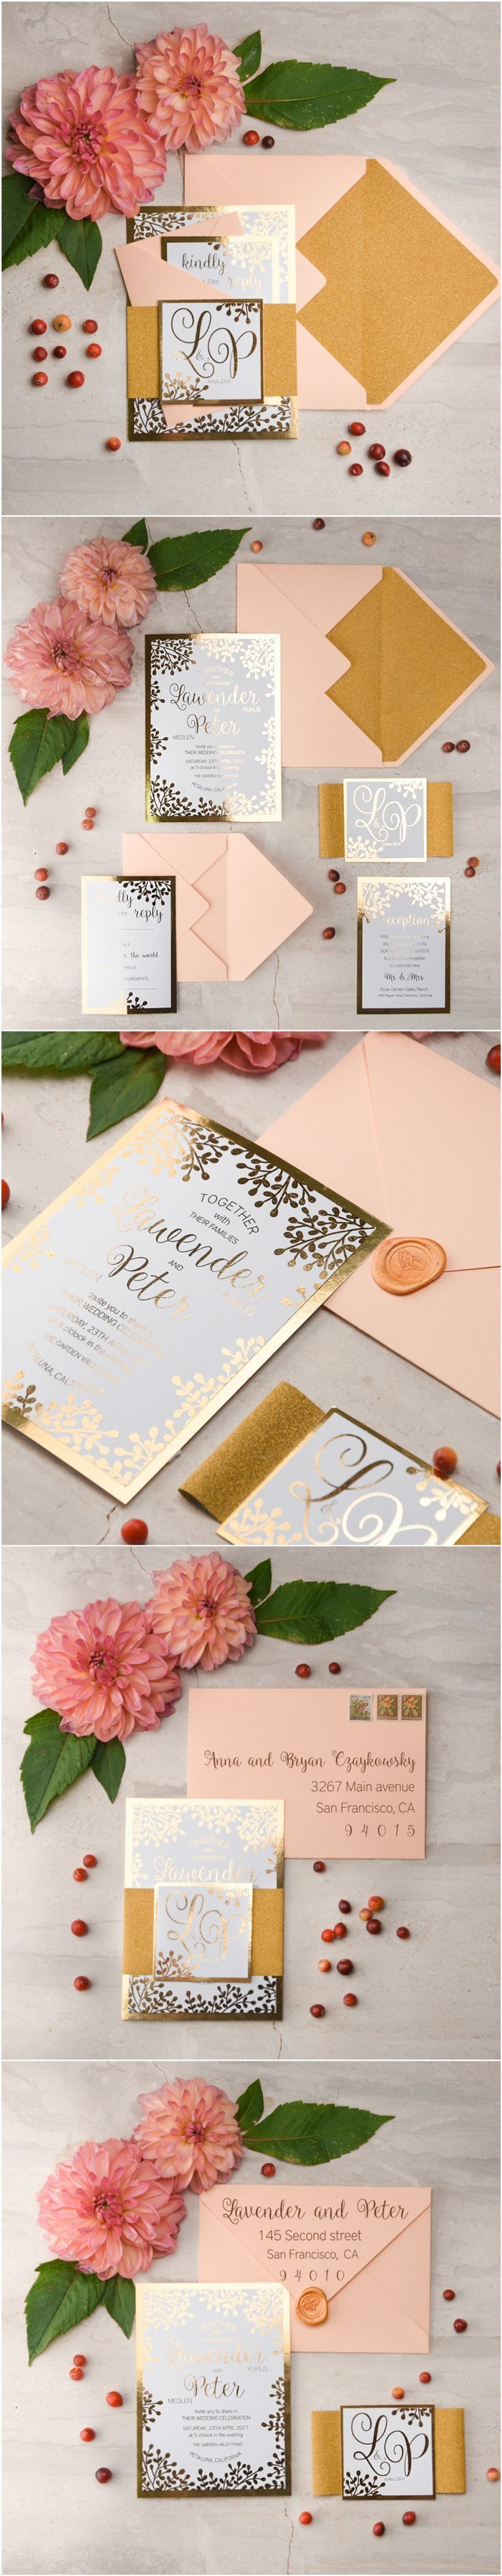 all ireland wedding invitations%0A Peach  u     Gold Wedding Invitations  gold  glitter  weddinginvitations   elegant  glamorous